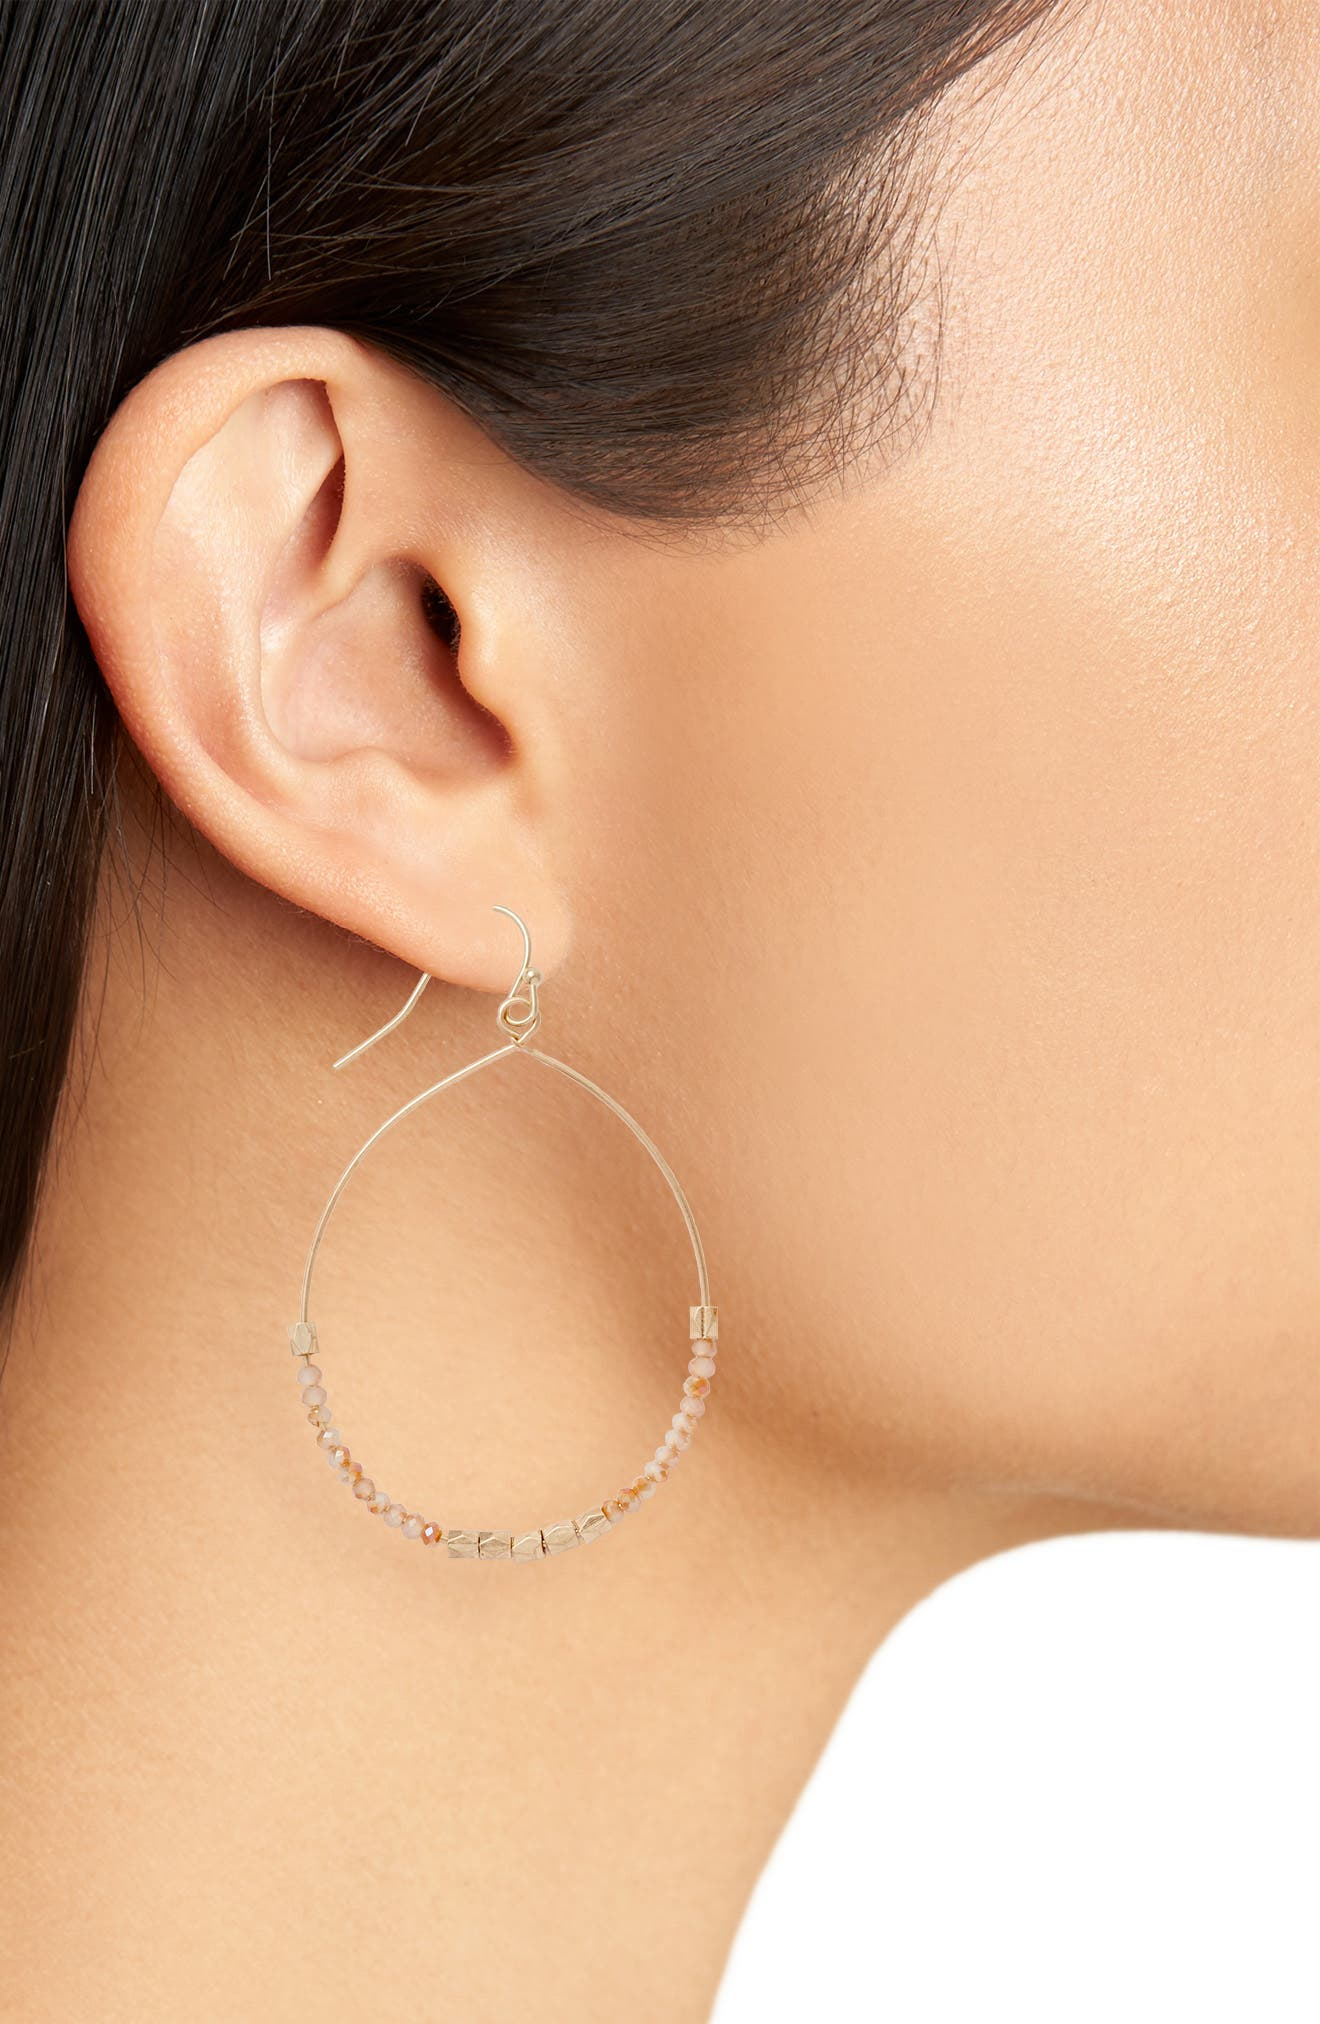 Fine Beaded Wire Hoops,                             Alternate thumbnail 2, color,                             Peach- Gold